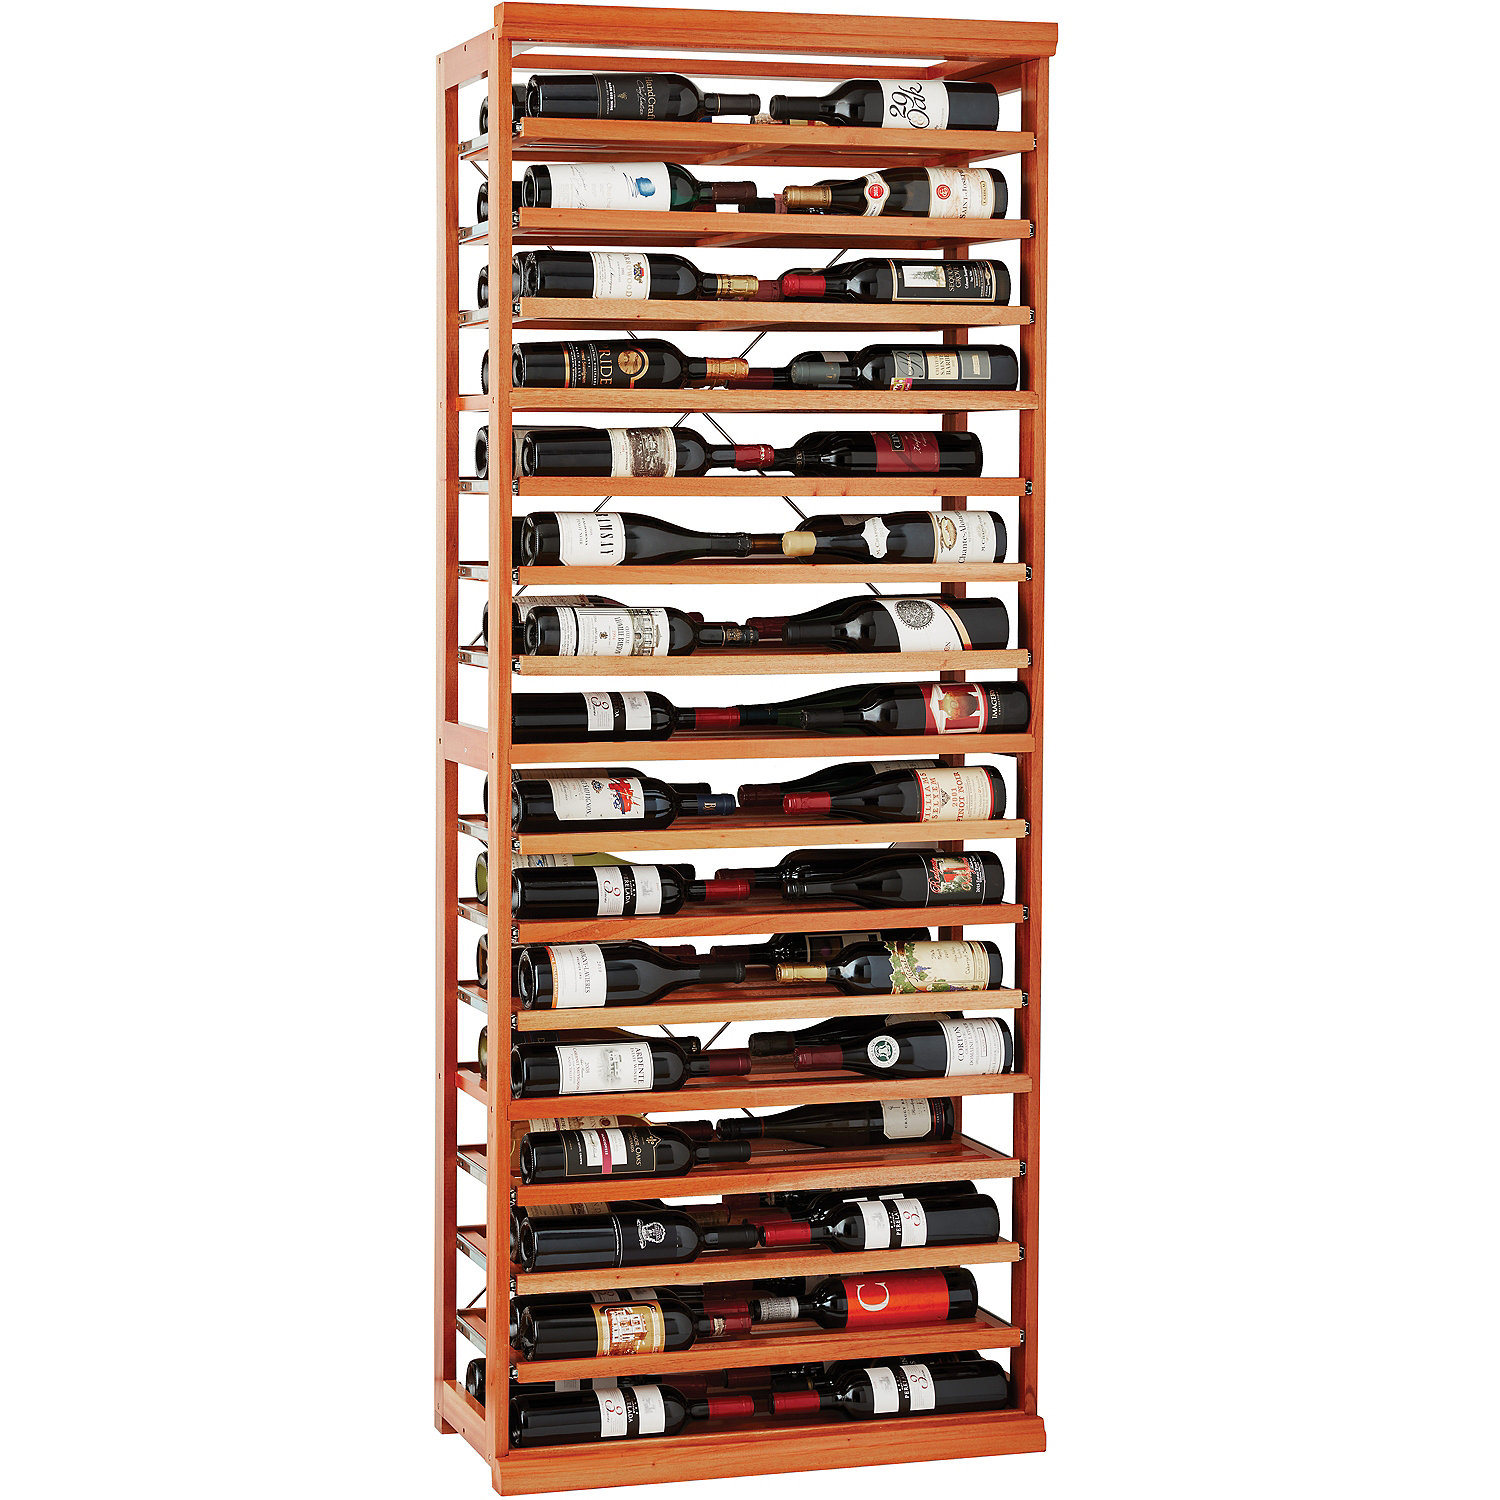 aca818d2f8 N'FINITY Label-View Wine Rack Kit with Rolling Shelves - Wine Enthusiast